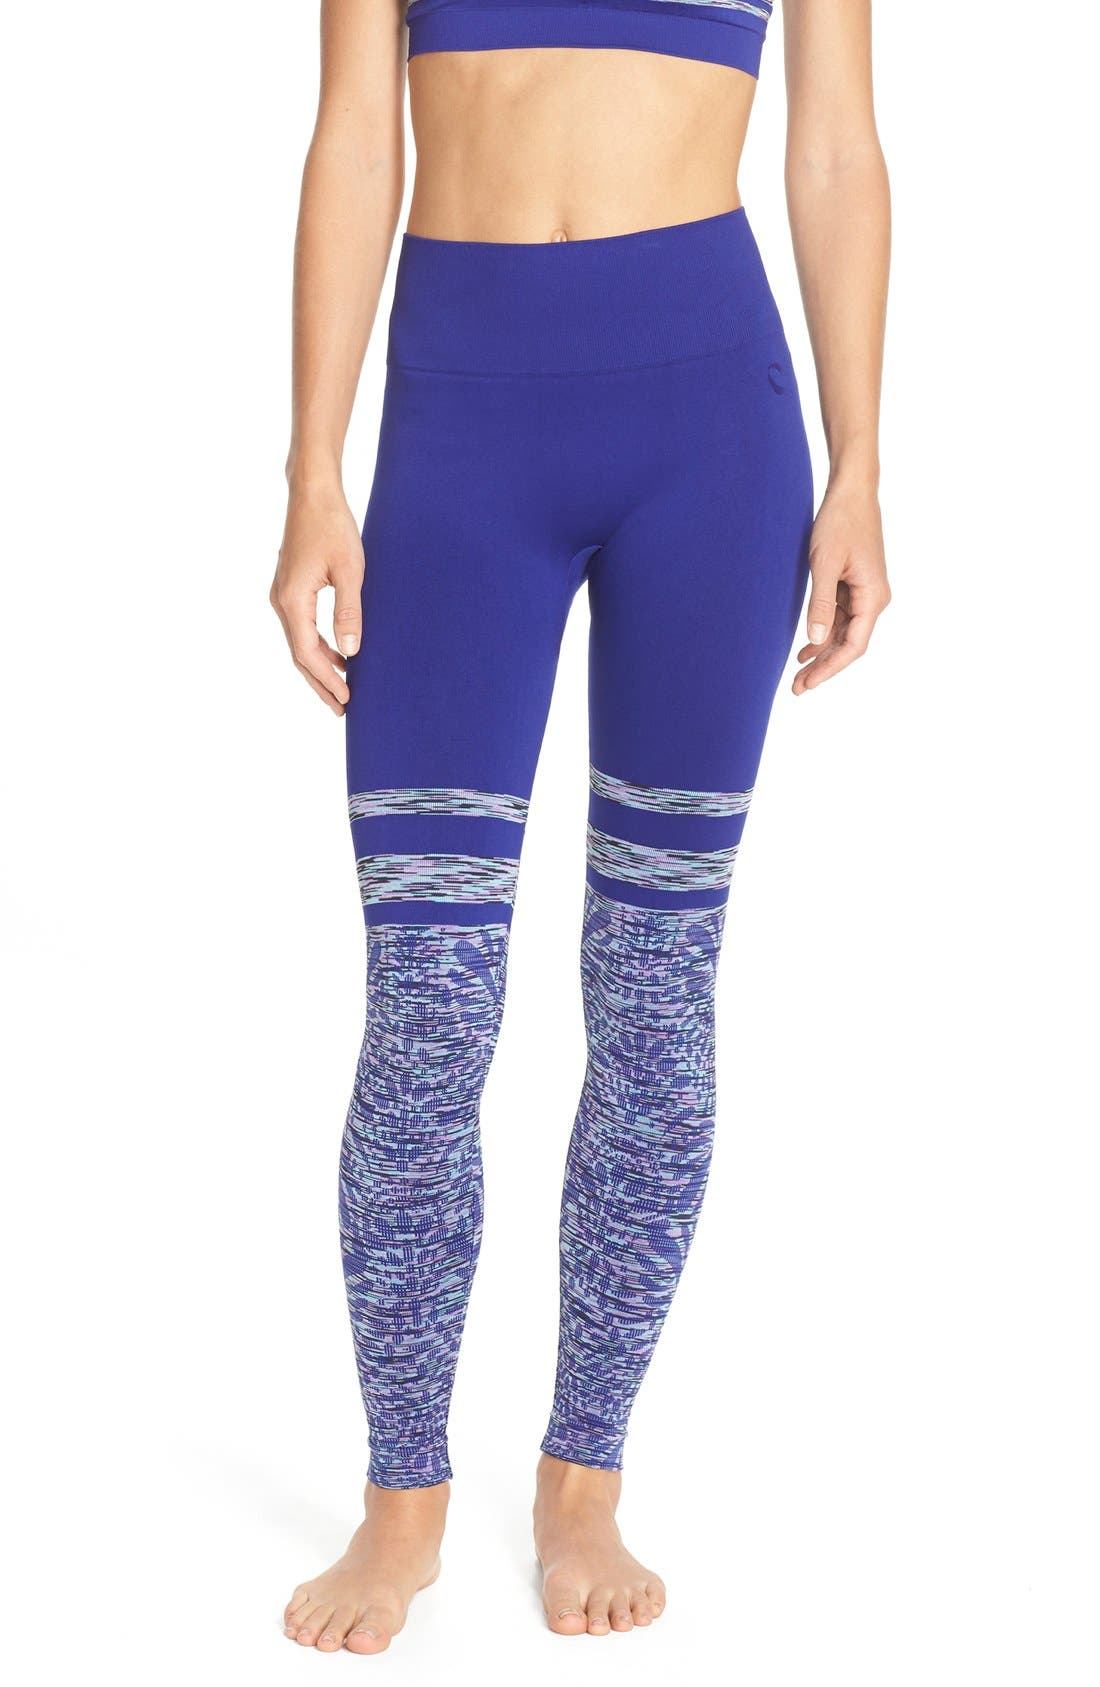 Main Image - Climawear 'Sitting Pretty' High Rise Leggings